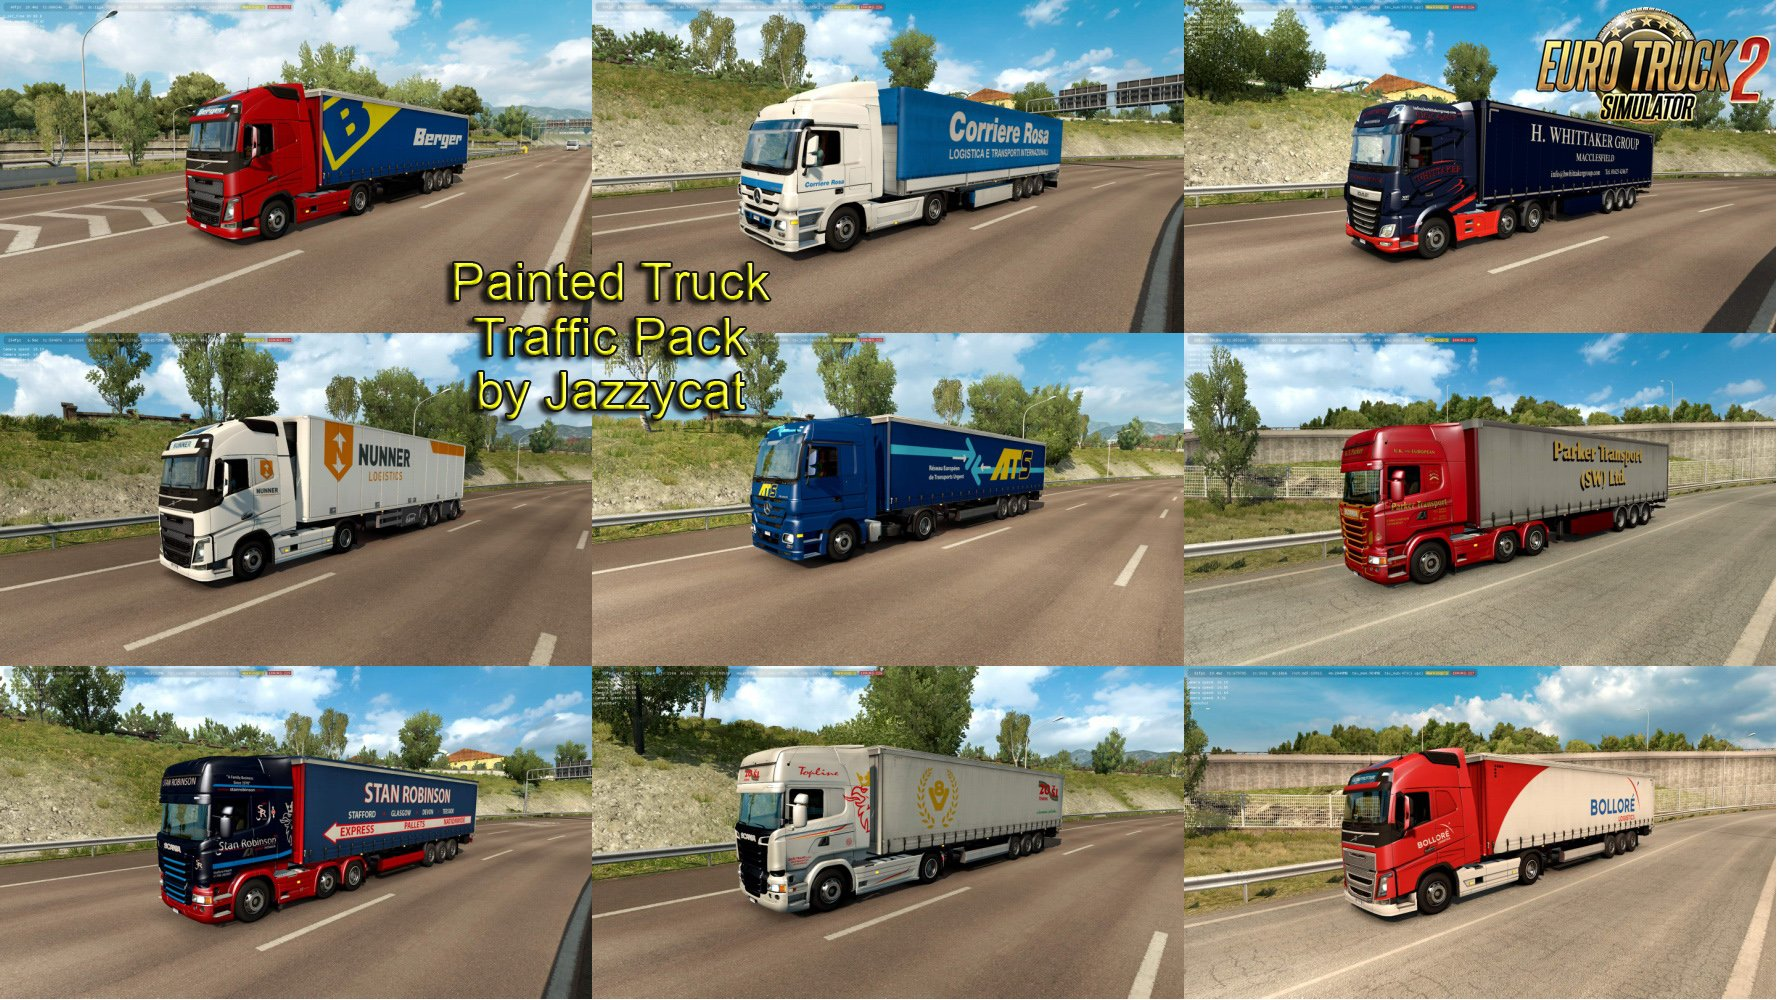 Painted Truck Traffic Pack v6.1 by Jazzycat